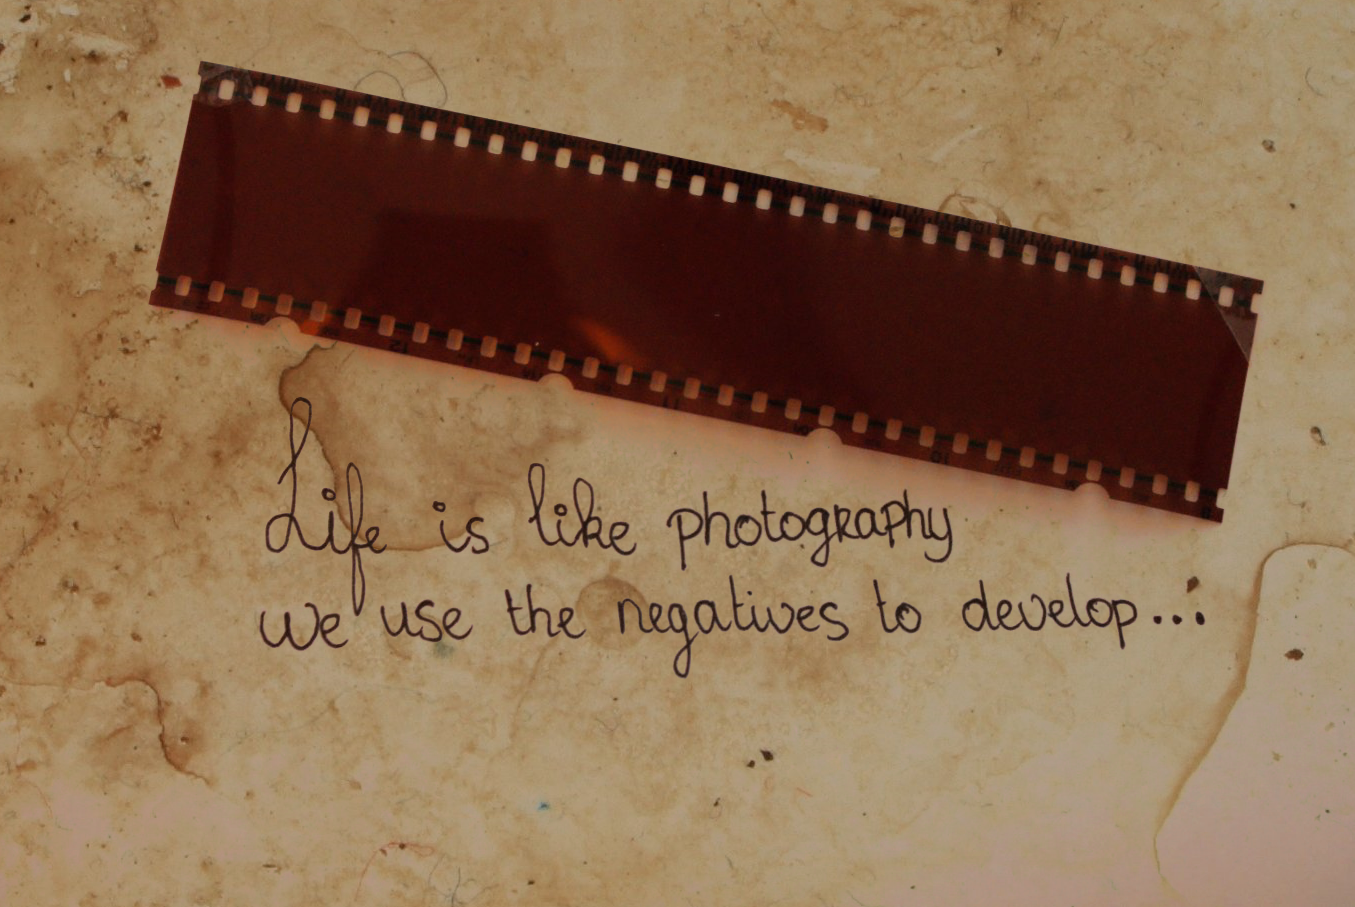 photography_quote_by_skeletonhorror.png